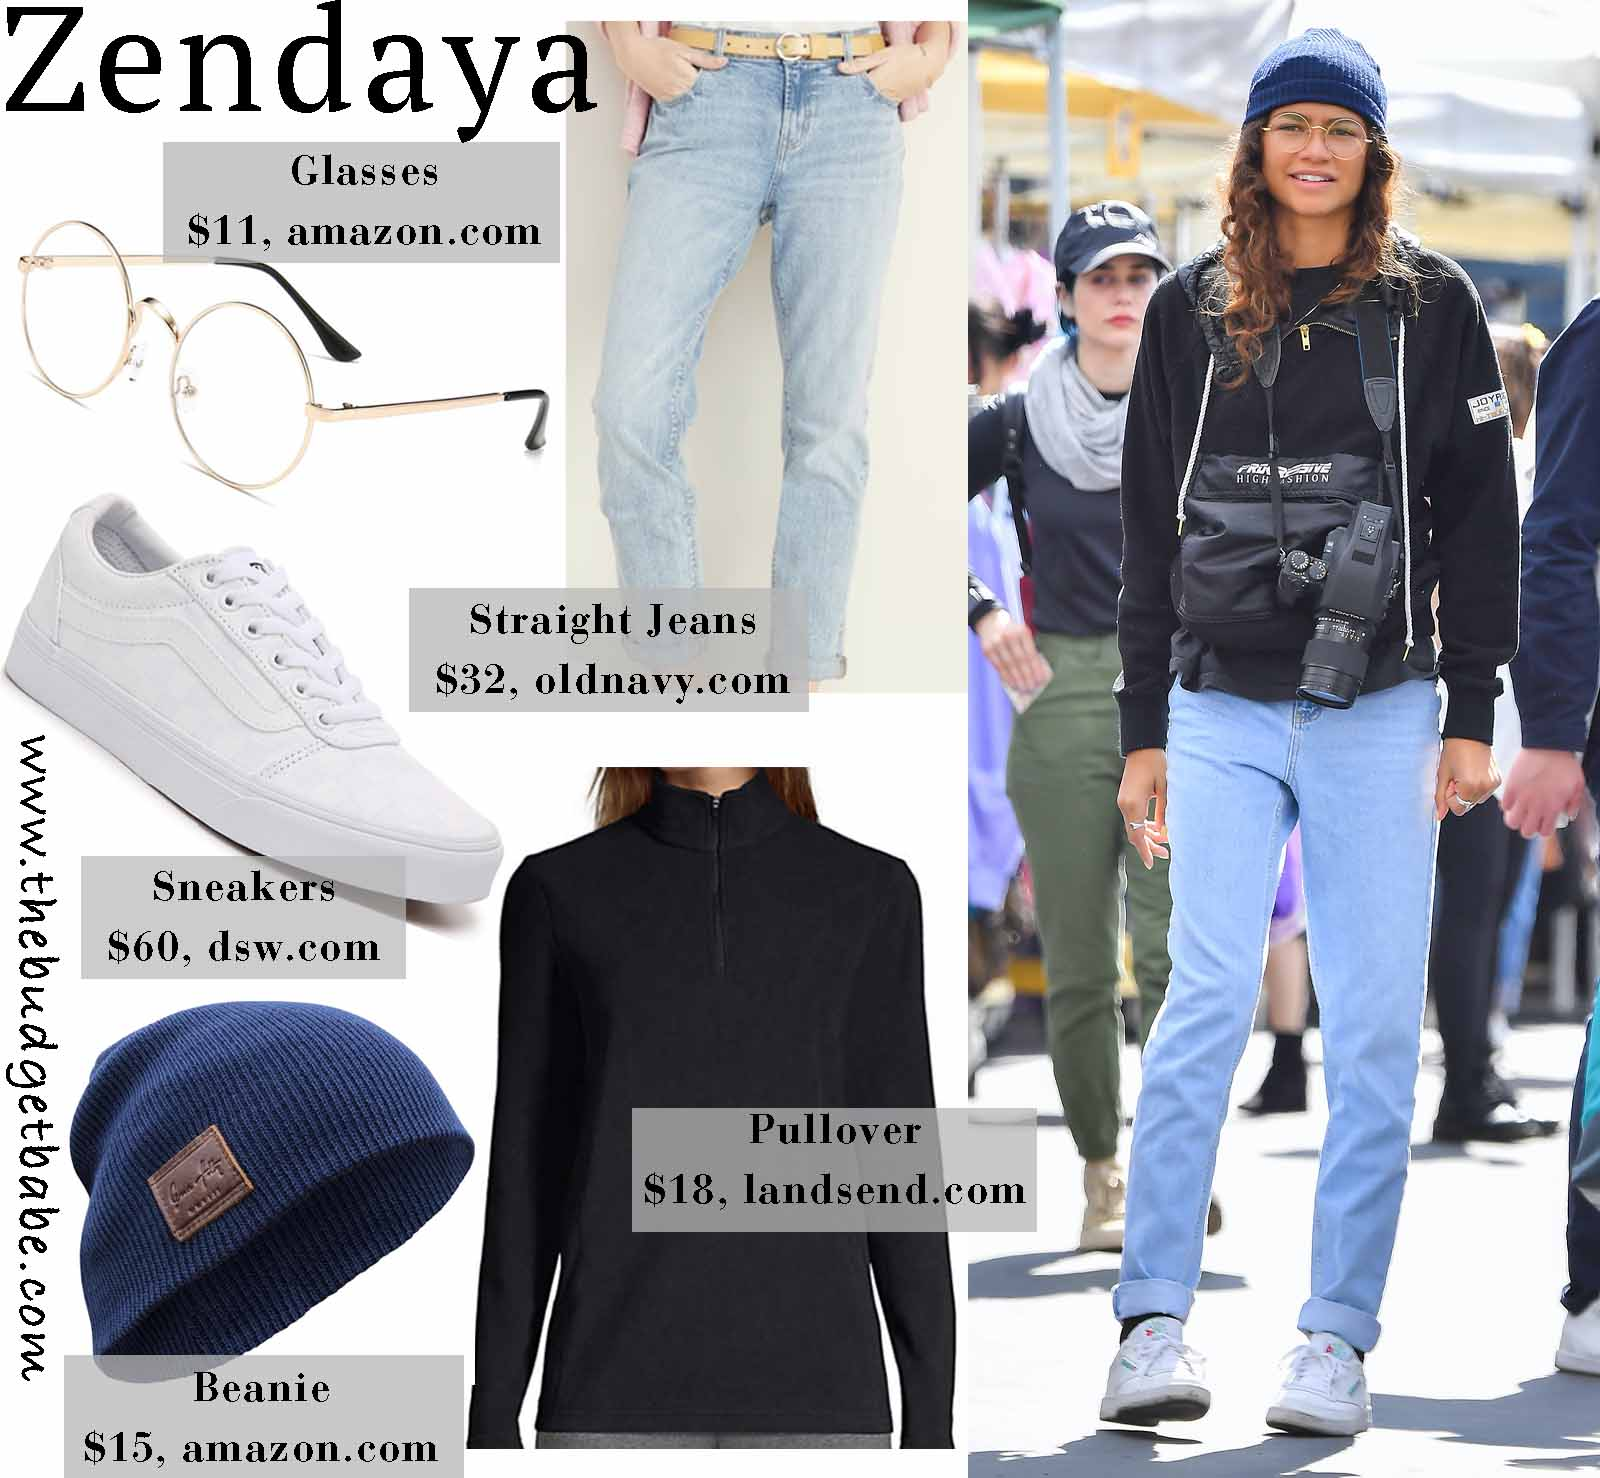 Zendaya is cute and cozy!